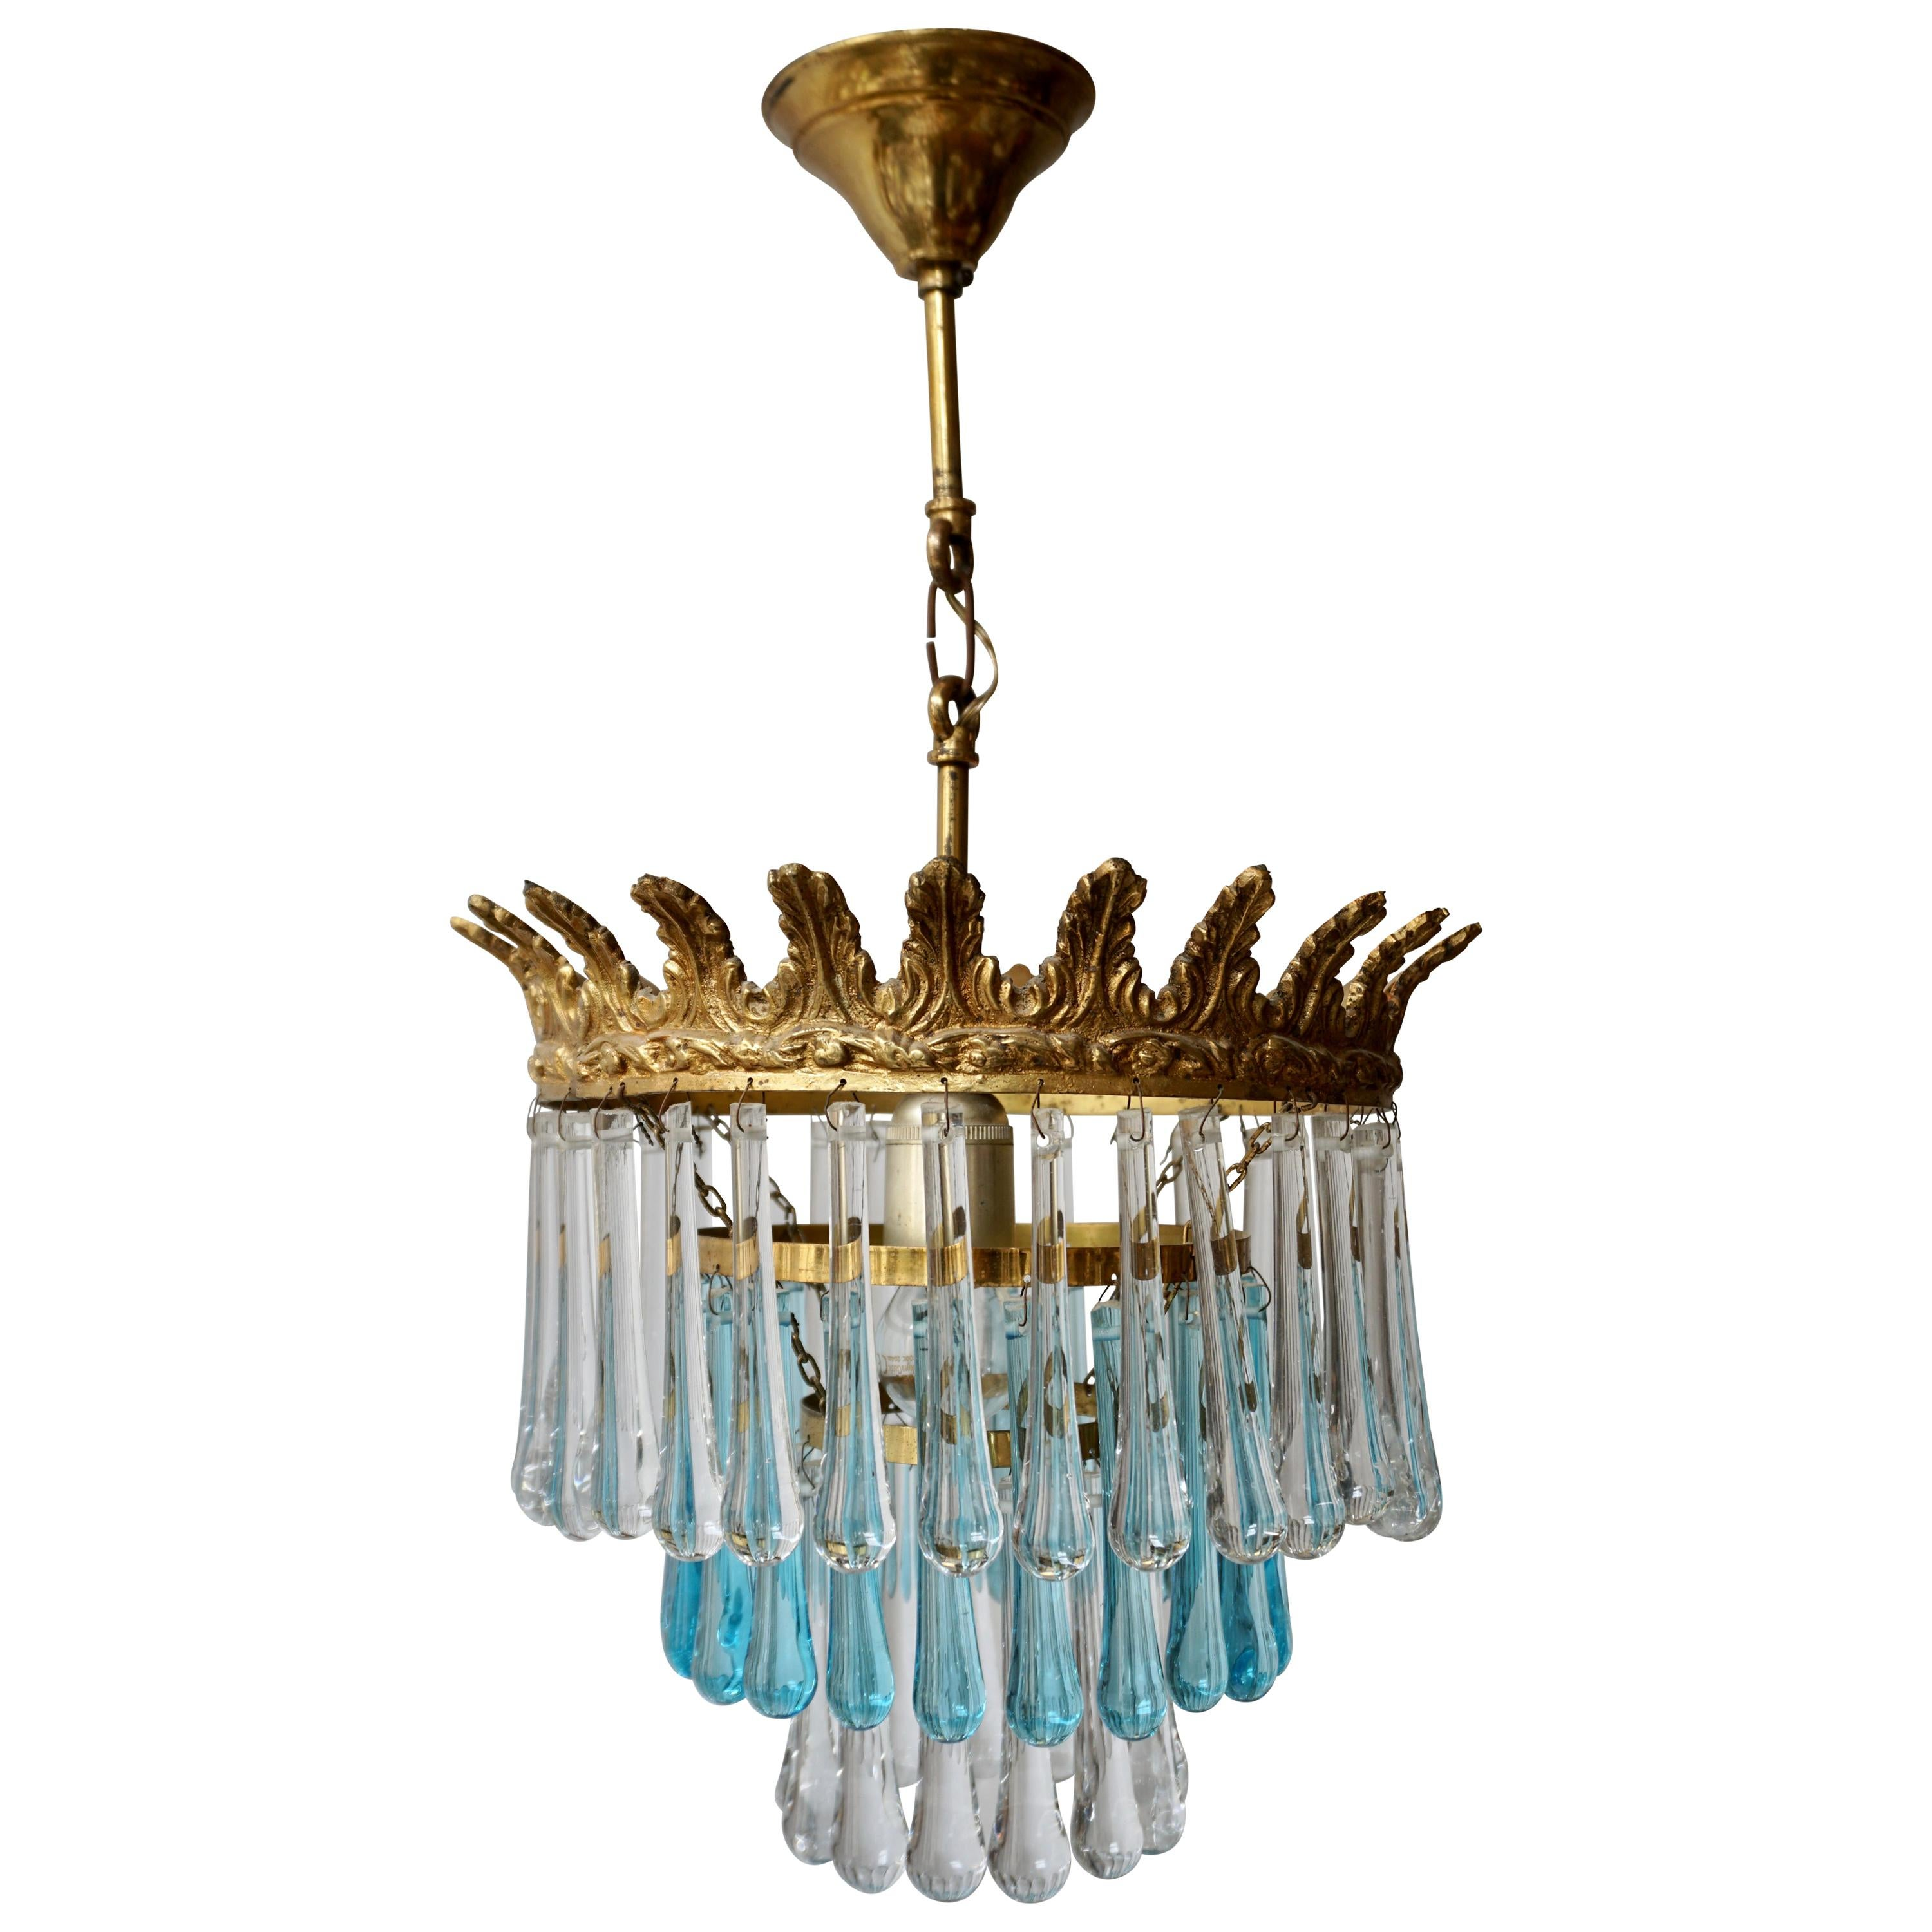 Italian Transparent and Blue Crystals Tear Drop Chandelier